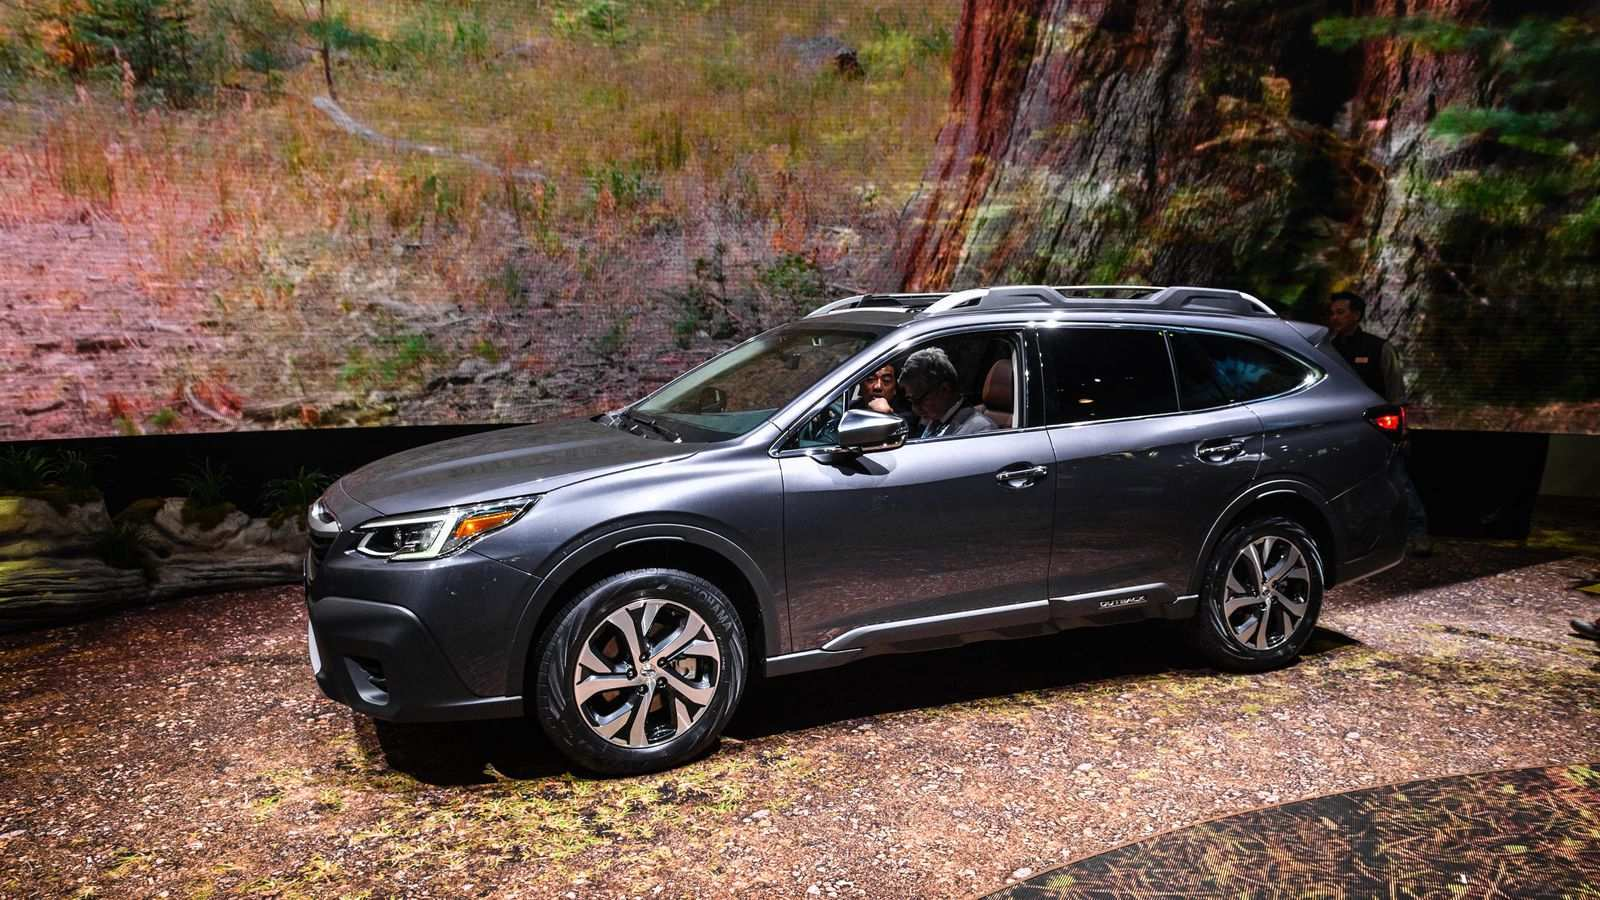 11 Great 2020 Subaru Outback Dimensions Concept for 2020 Subaru Outback Dimensions